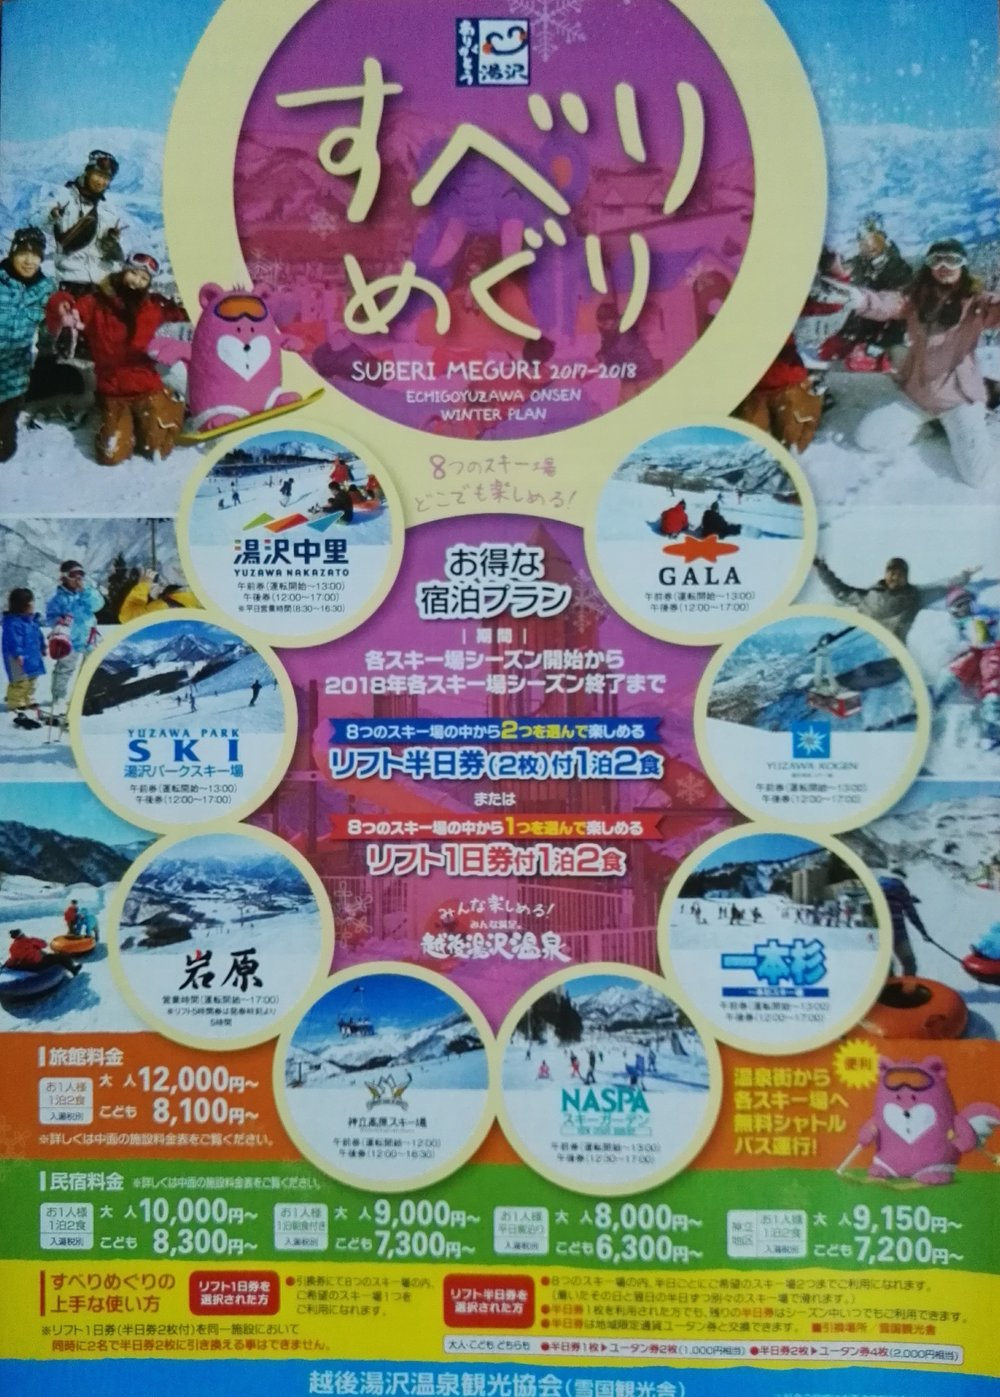 Yuzawa Suberi Meguri Value Packages.jpg